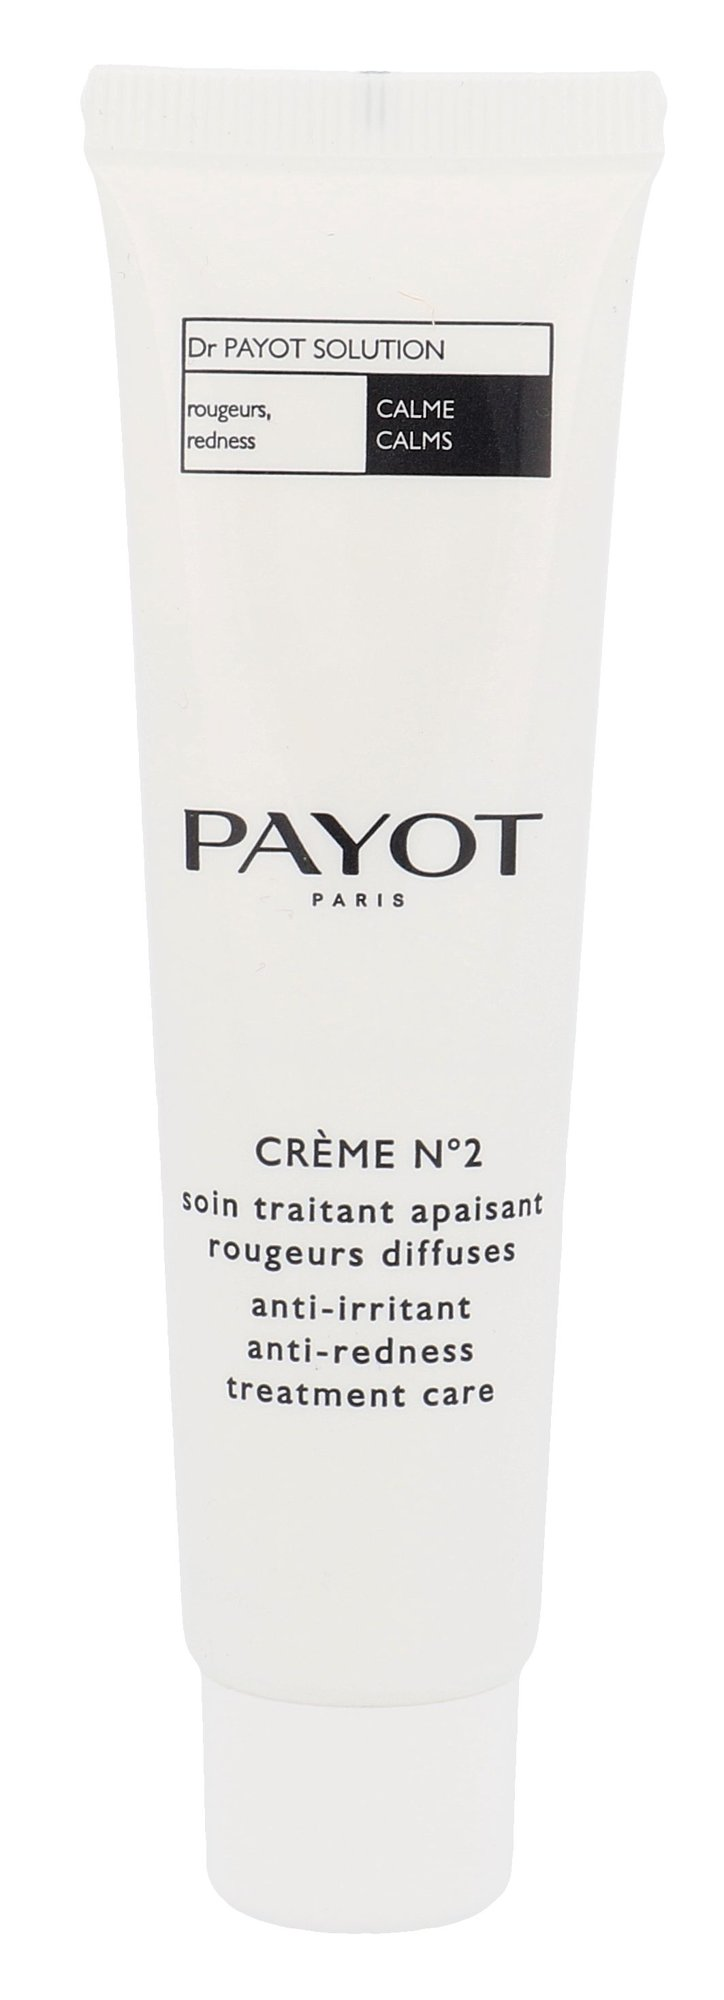 PAYOT Dr Payot Solution Cosmetic 30ml  Creme No2 Anti Redness Treatment